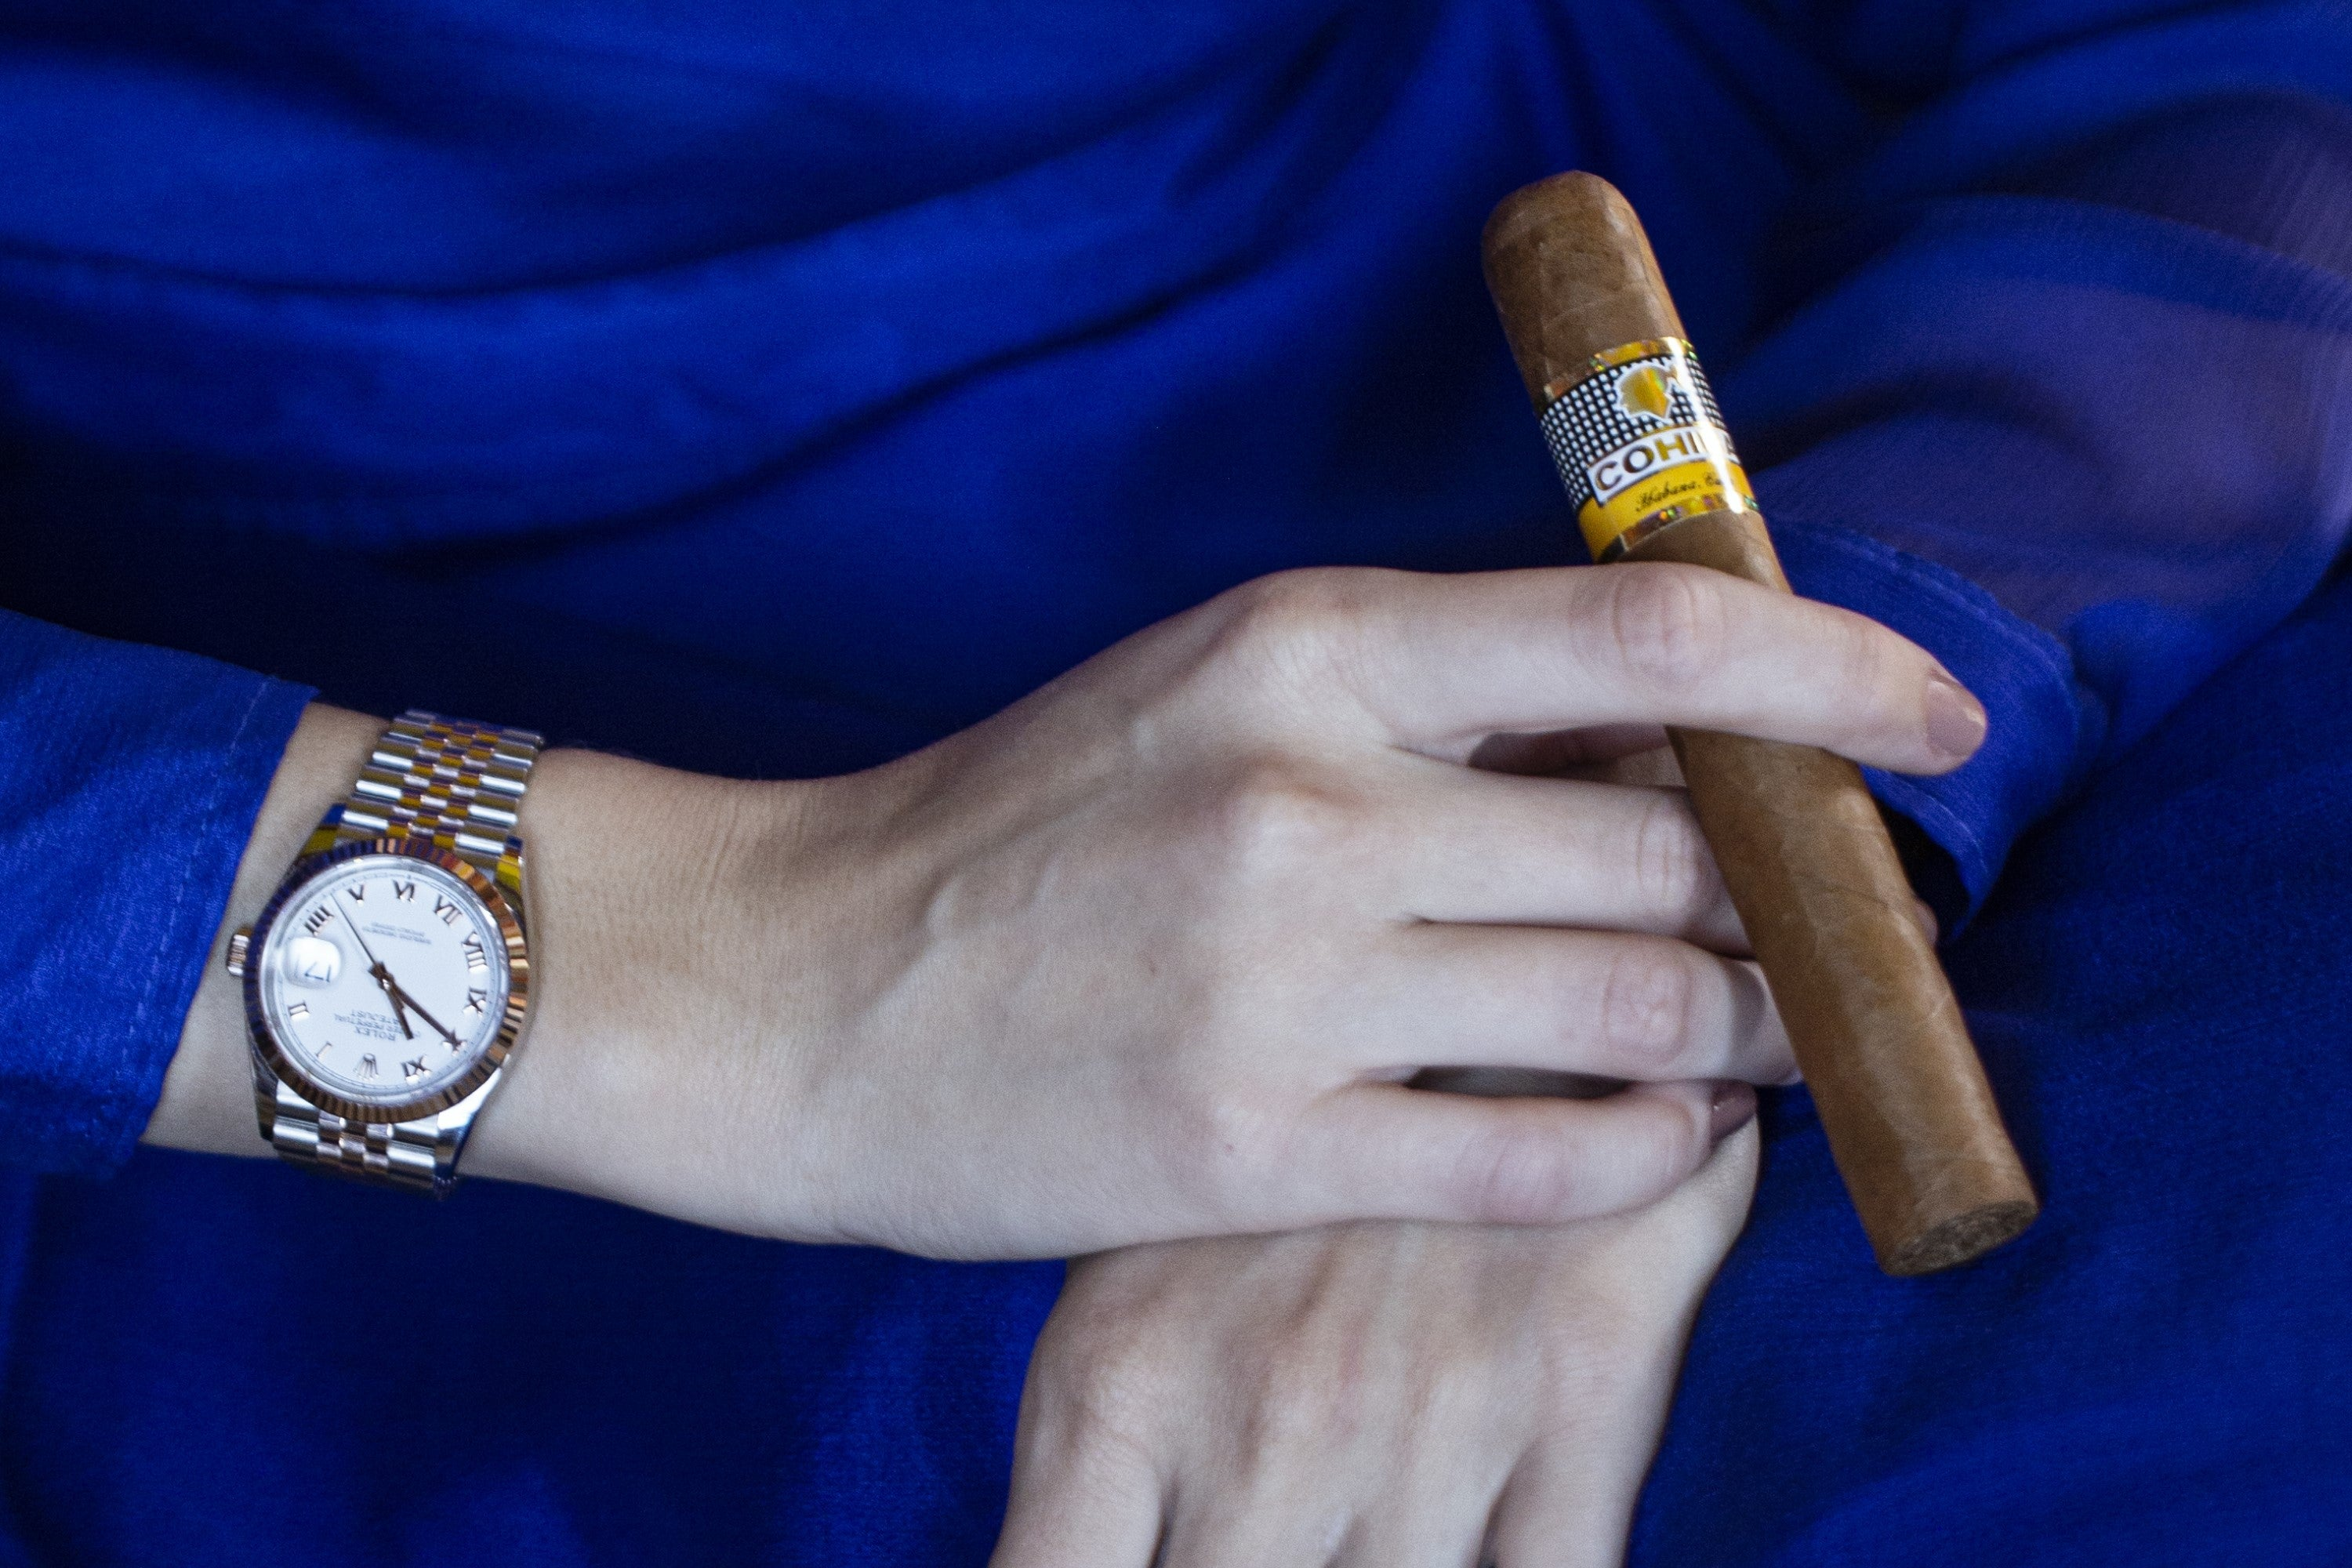 The Cohiba Siglo VI is an extremely popular cigar.